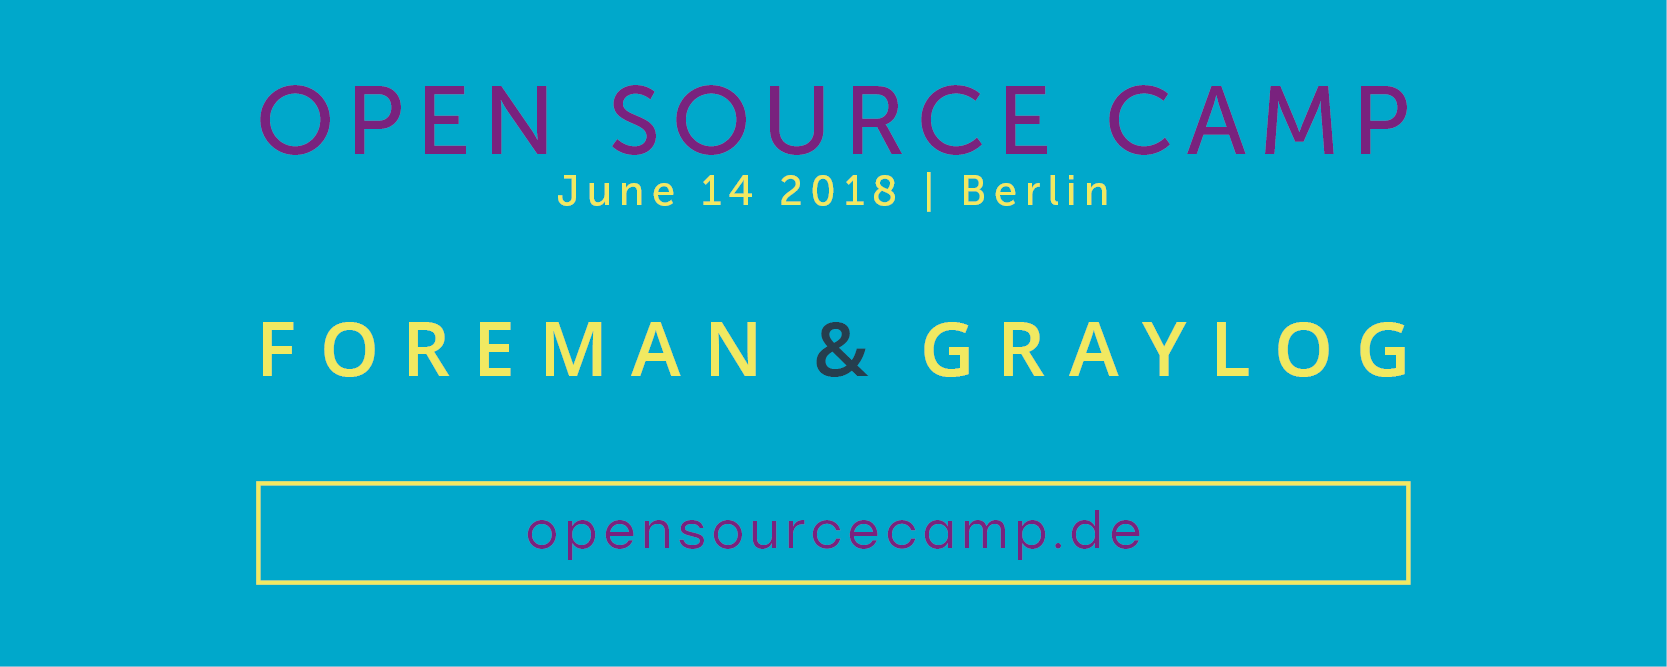 Open Source Camp Issue #1